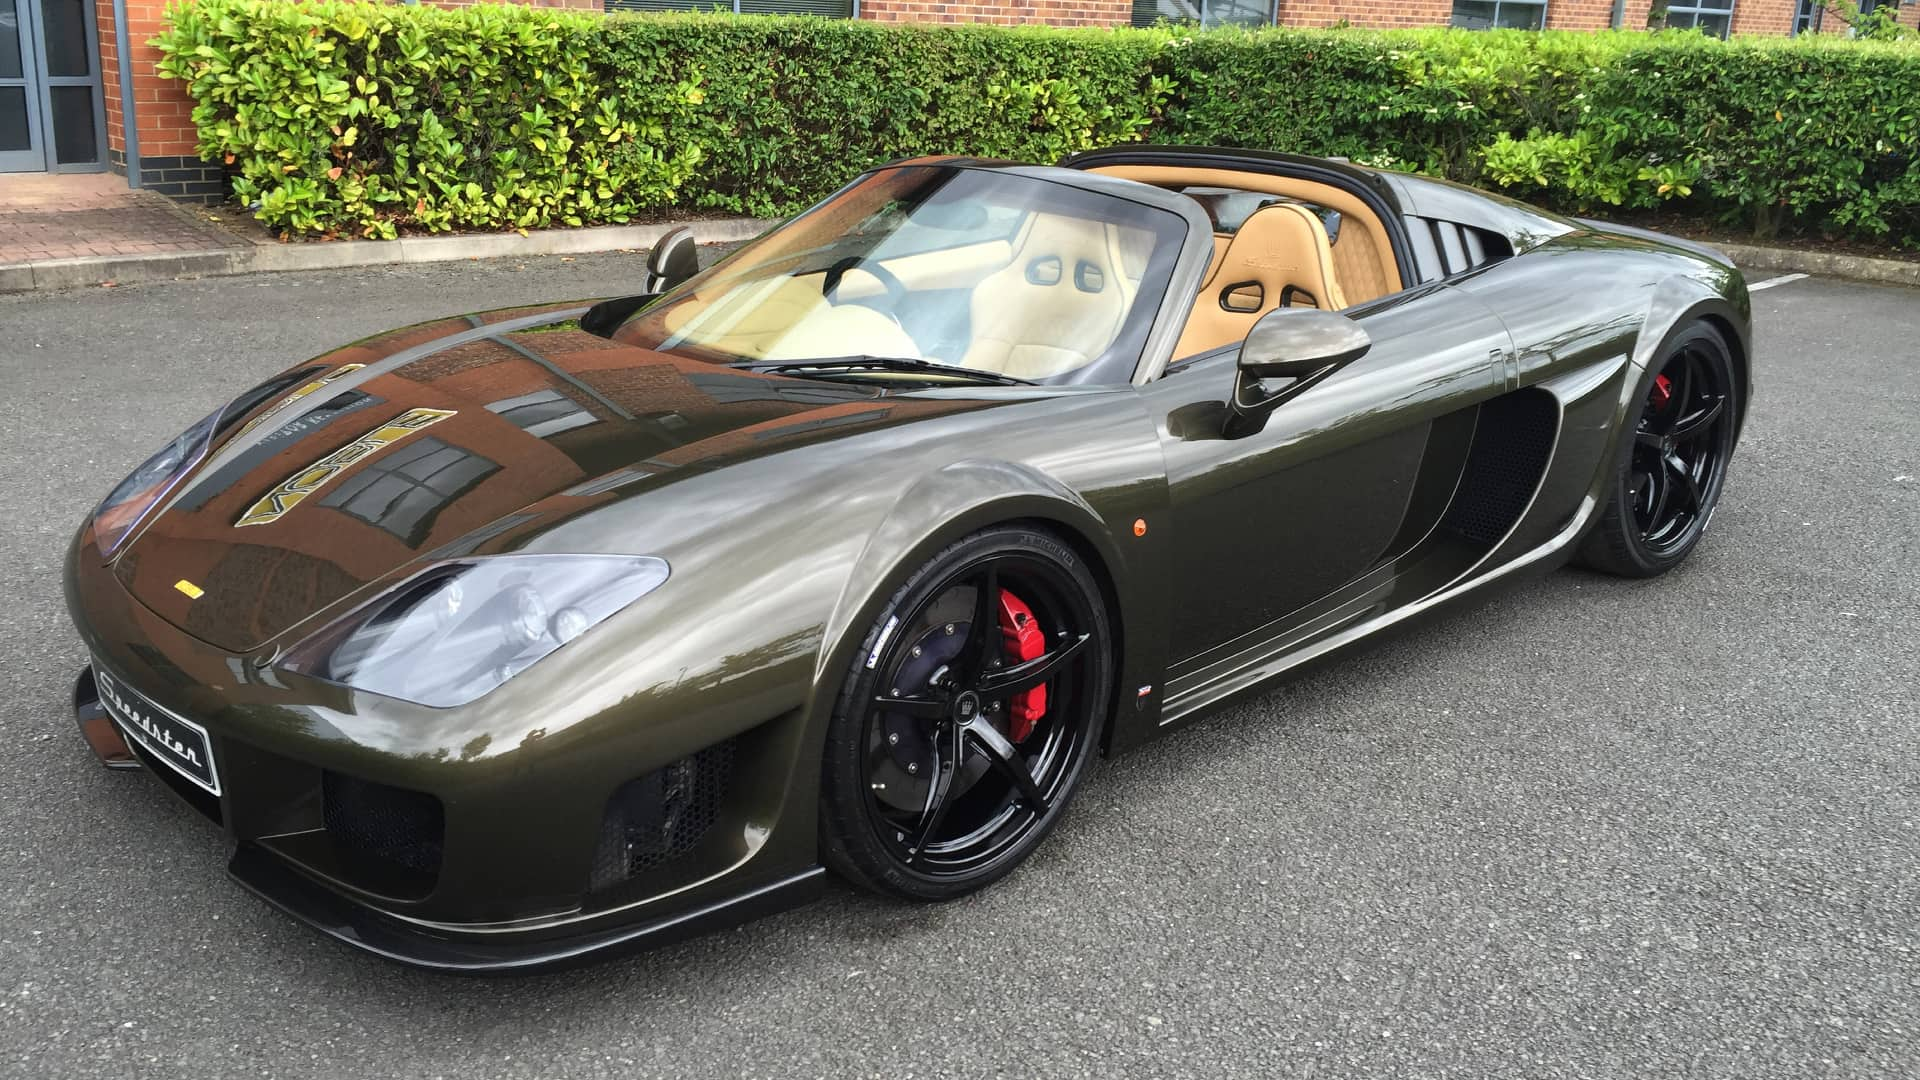 The new Noble M600 Speedster Might Cost £220,000